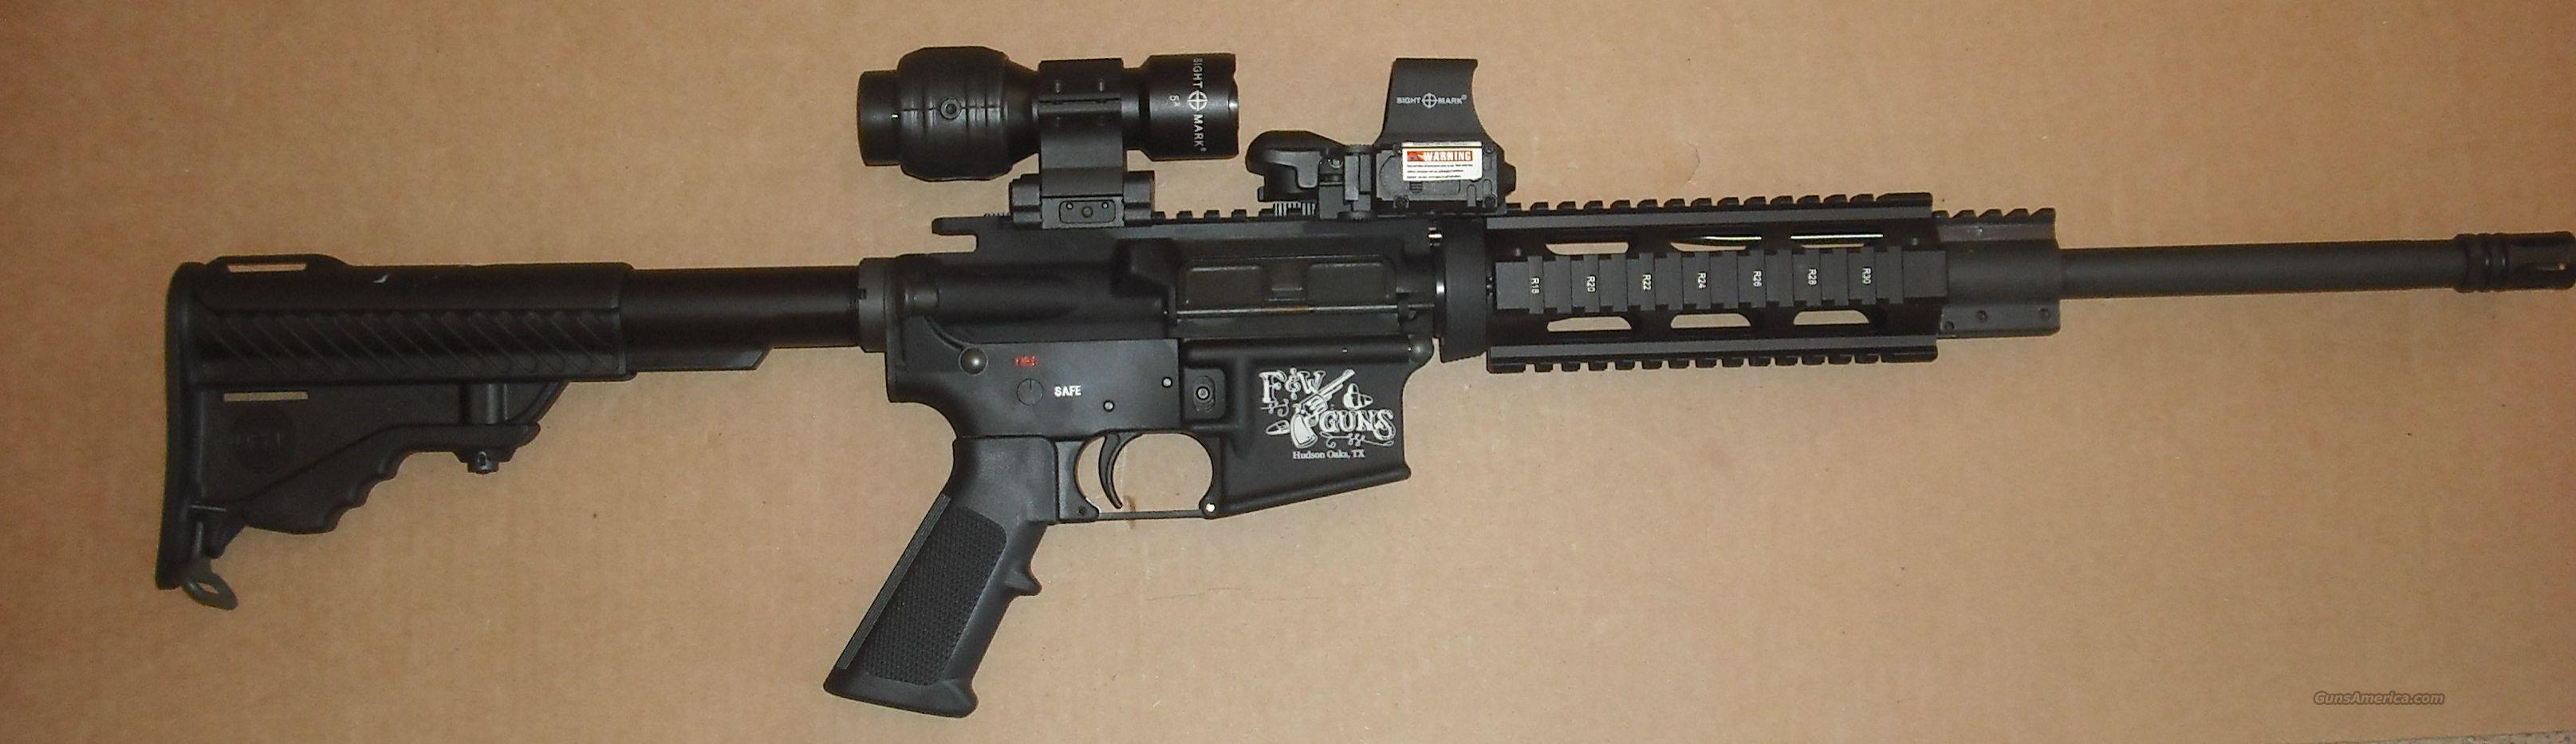 AR-15 with  Reflex  Sight and  5X Magnifier and Laser  Guns > Rifles > AR-15 Rifles - Small Manufacturers > Complete Rifle